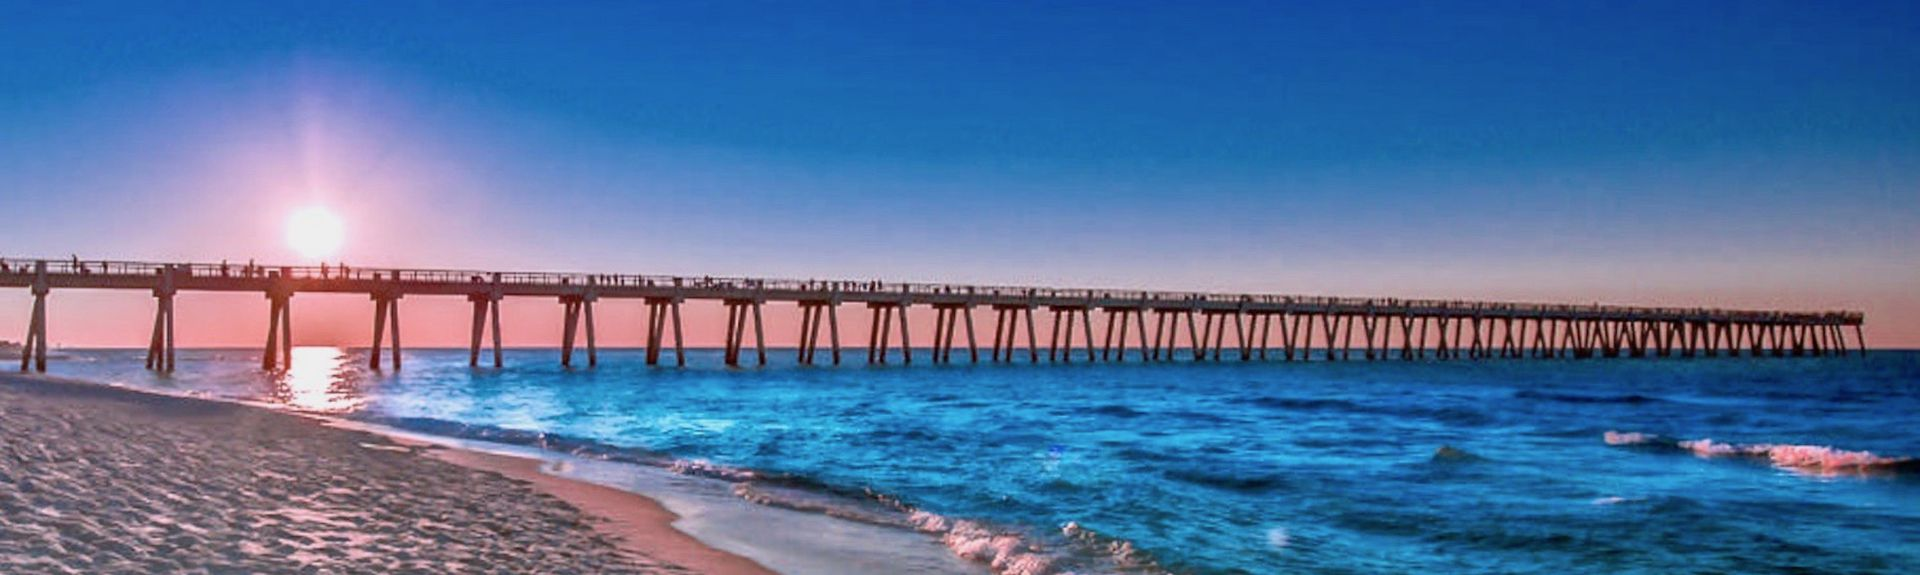 The Pearl of Navarre Beach (Navarre Beach, Florida, United States)